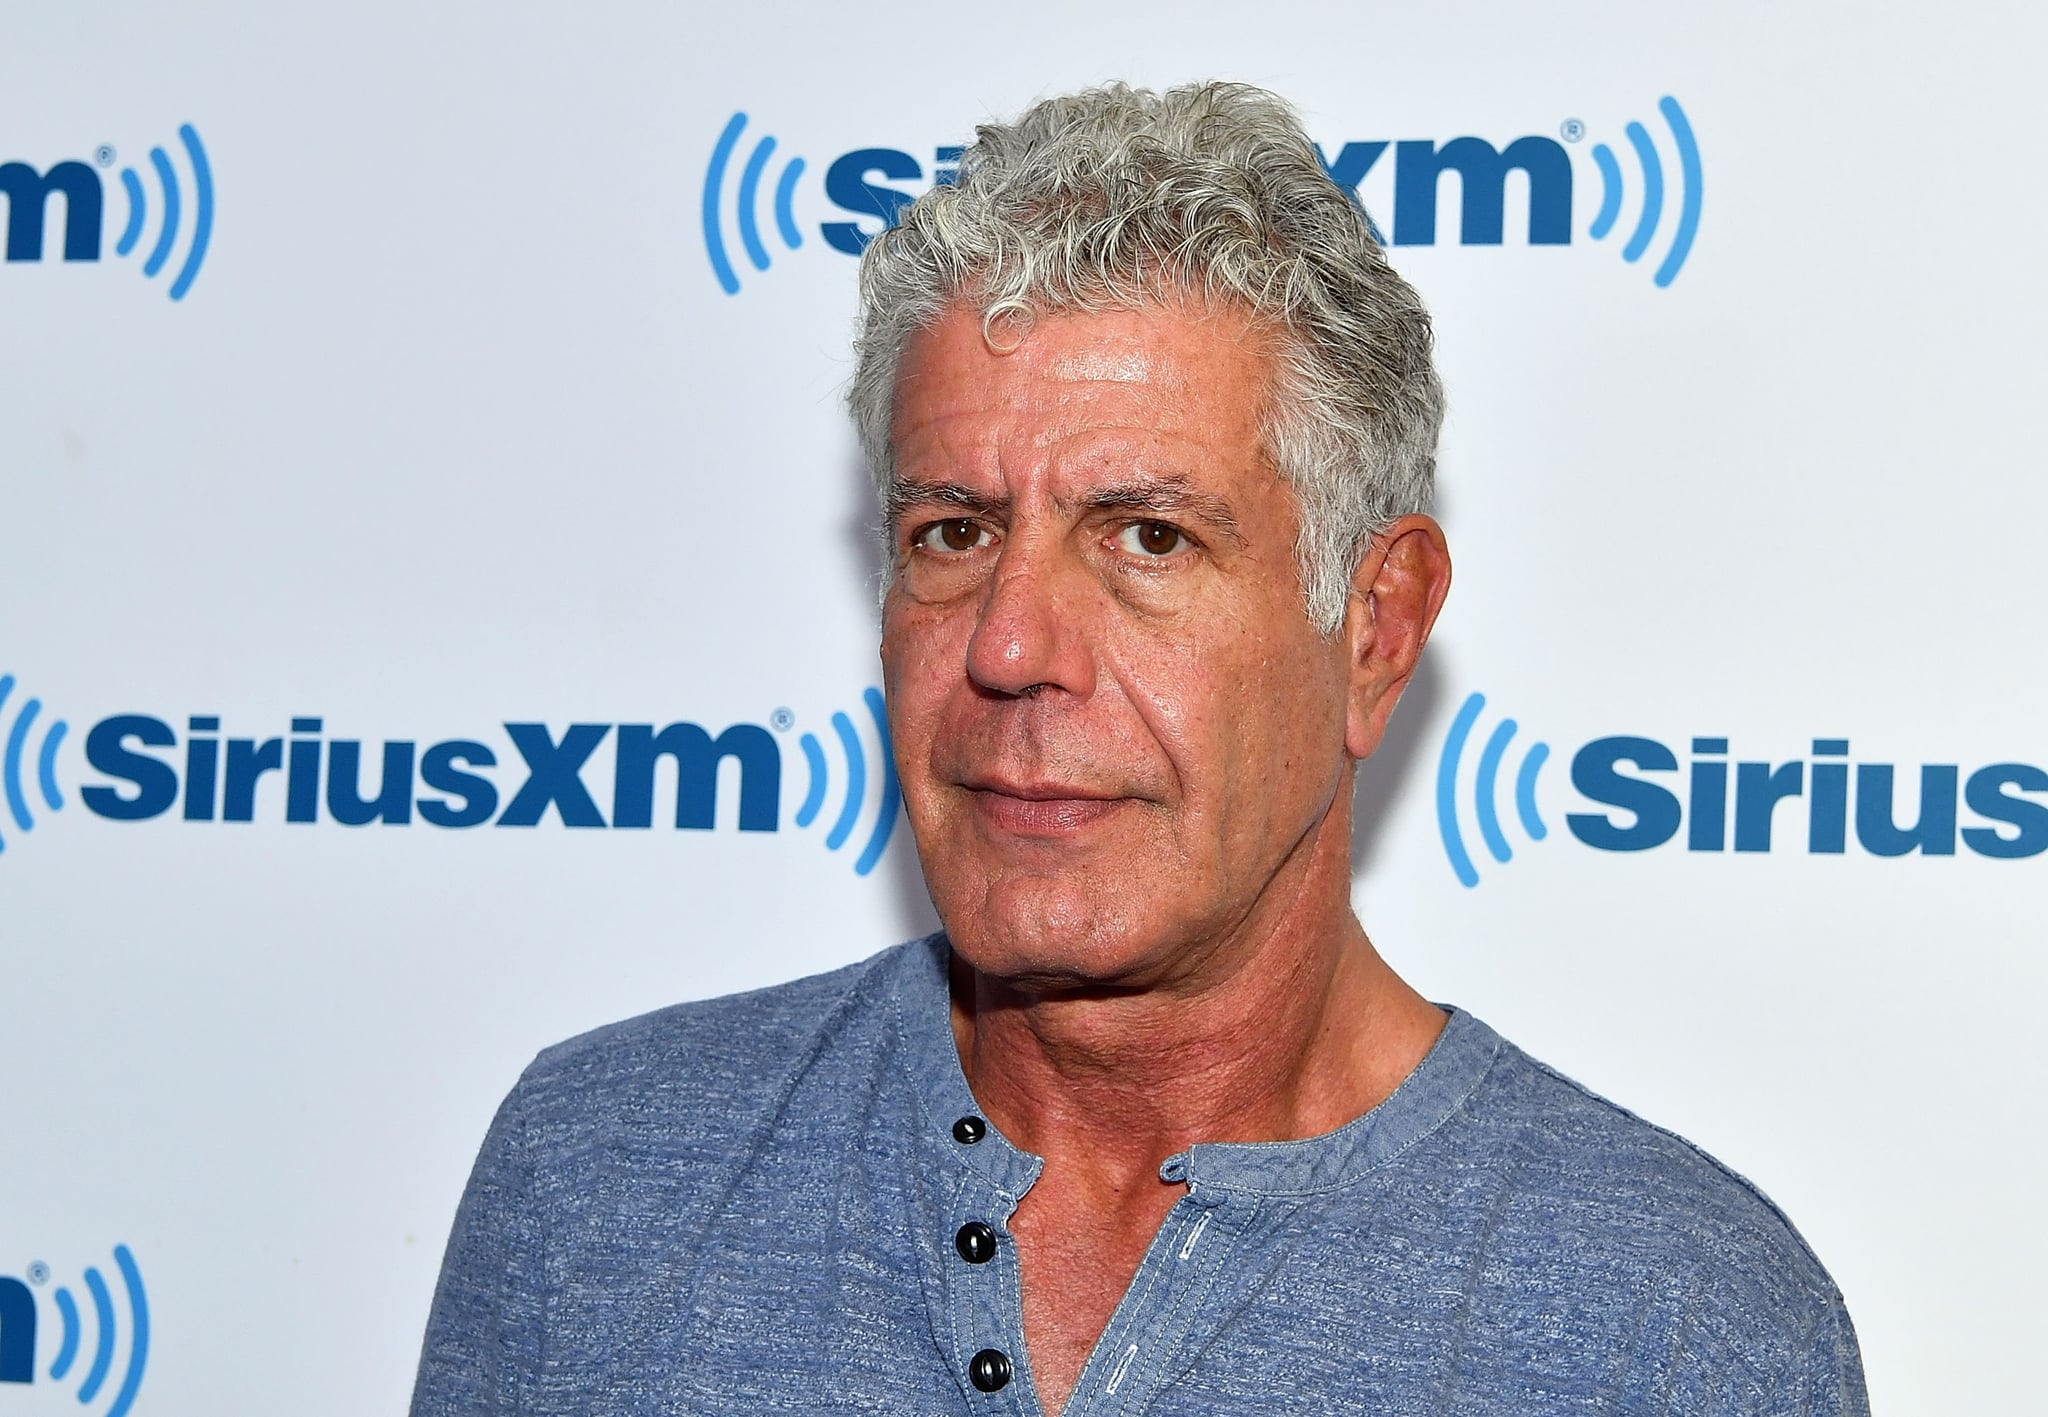 NEW YORK, NY - OCTOBER 05:  (EXCLUSIVE COVERAGE) Chef/TV personality Anthony Bourdain visits SiriusXM Studios on October 5, 2017 in New York City.  (Photo by Slaven Vlasic/Getty Images)